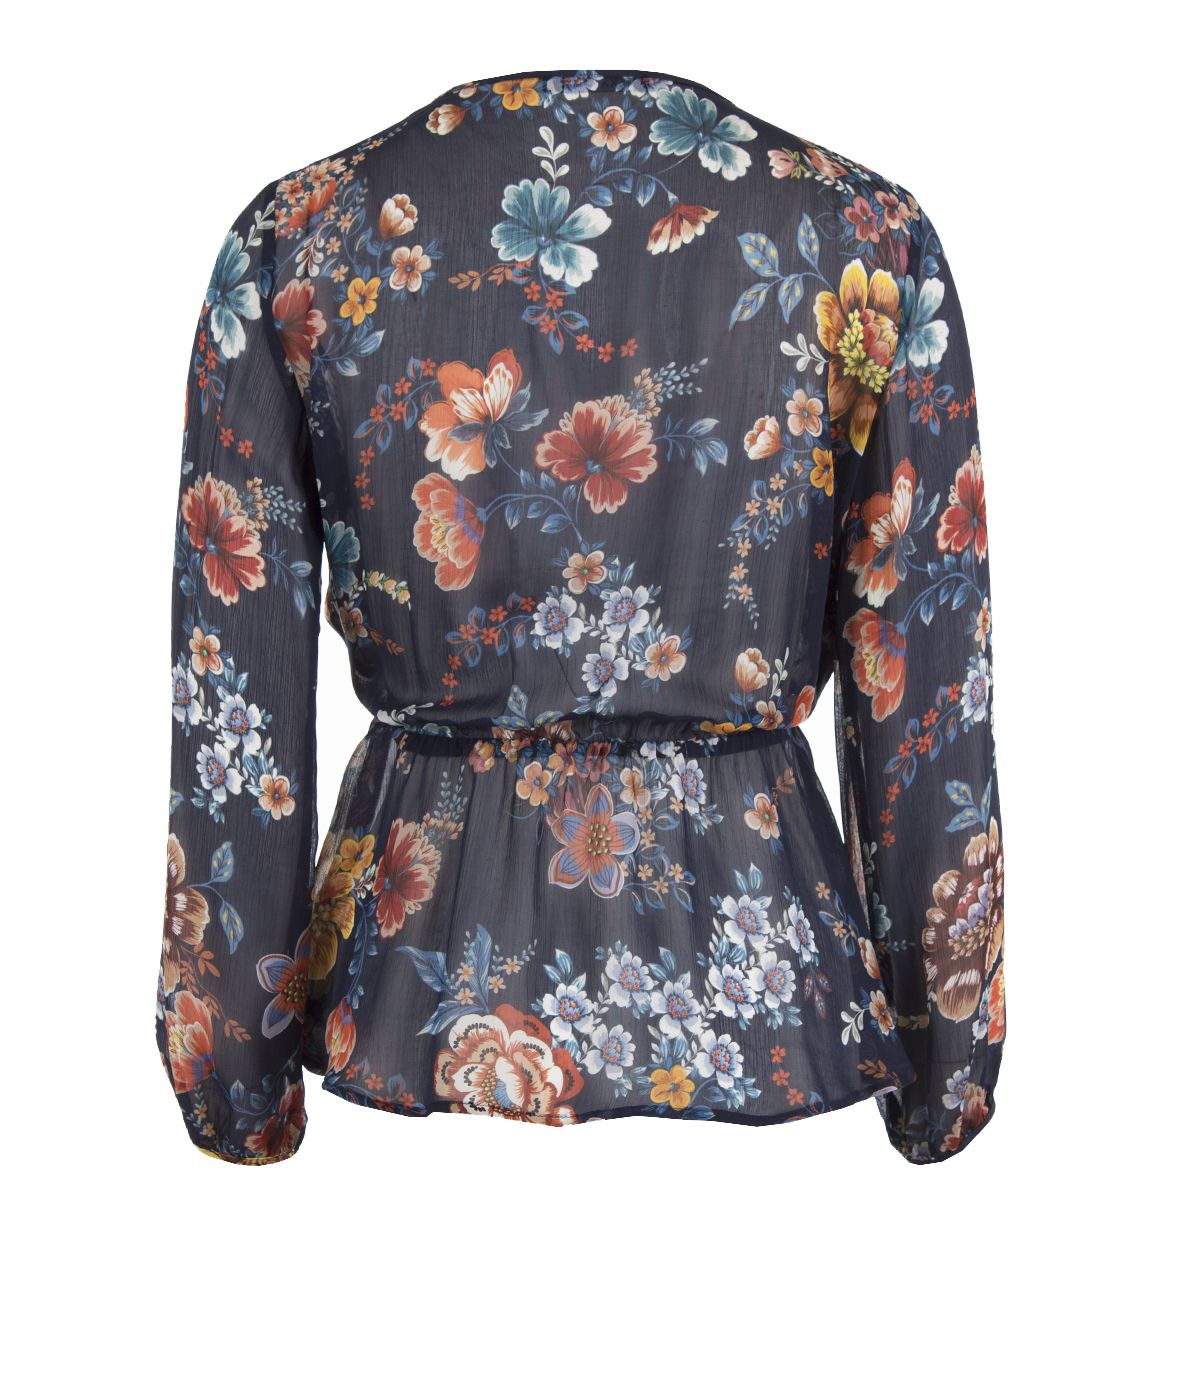 V-neckline blouse with tie-waist cut, 100% rayon, flower print 1